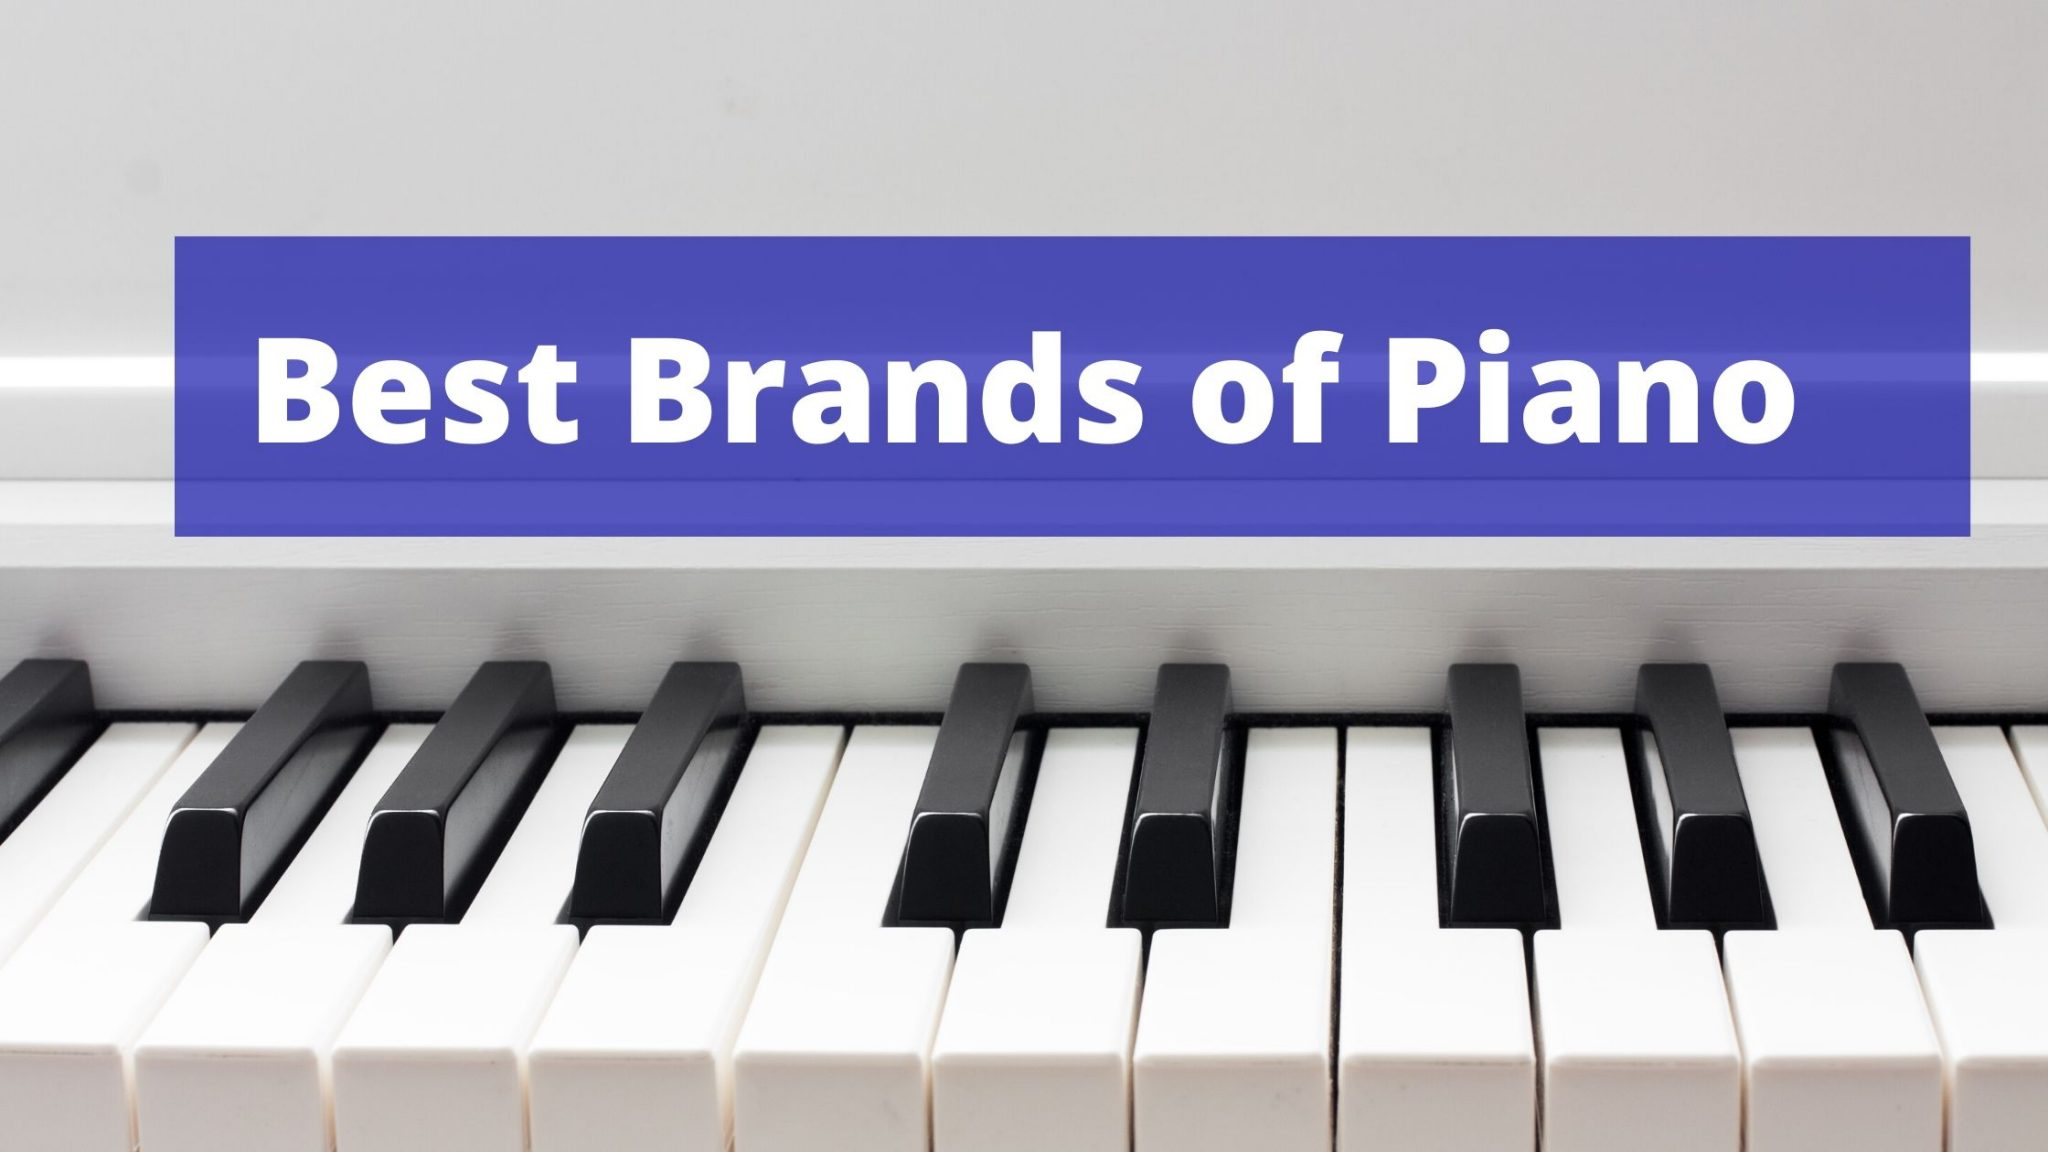 Best Brands of Piano